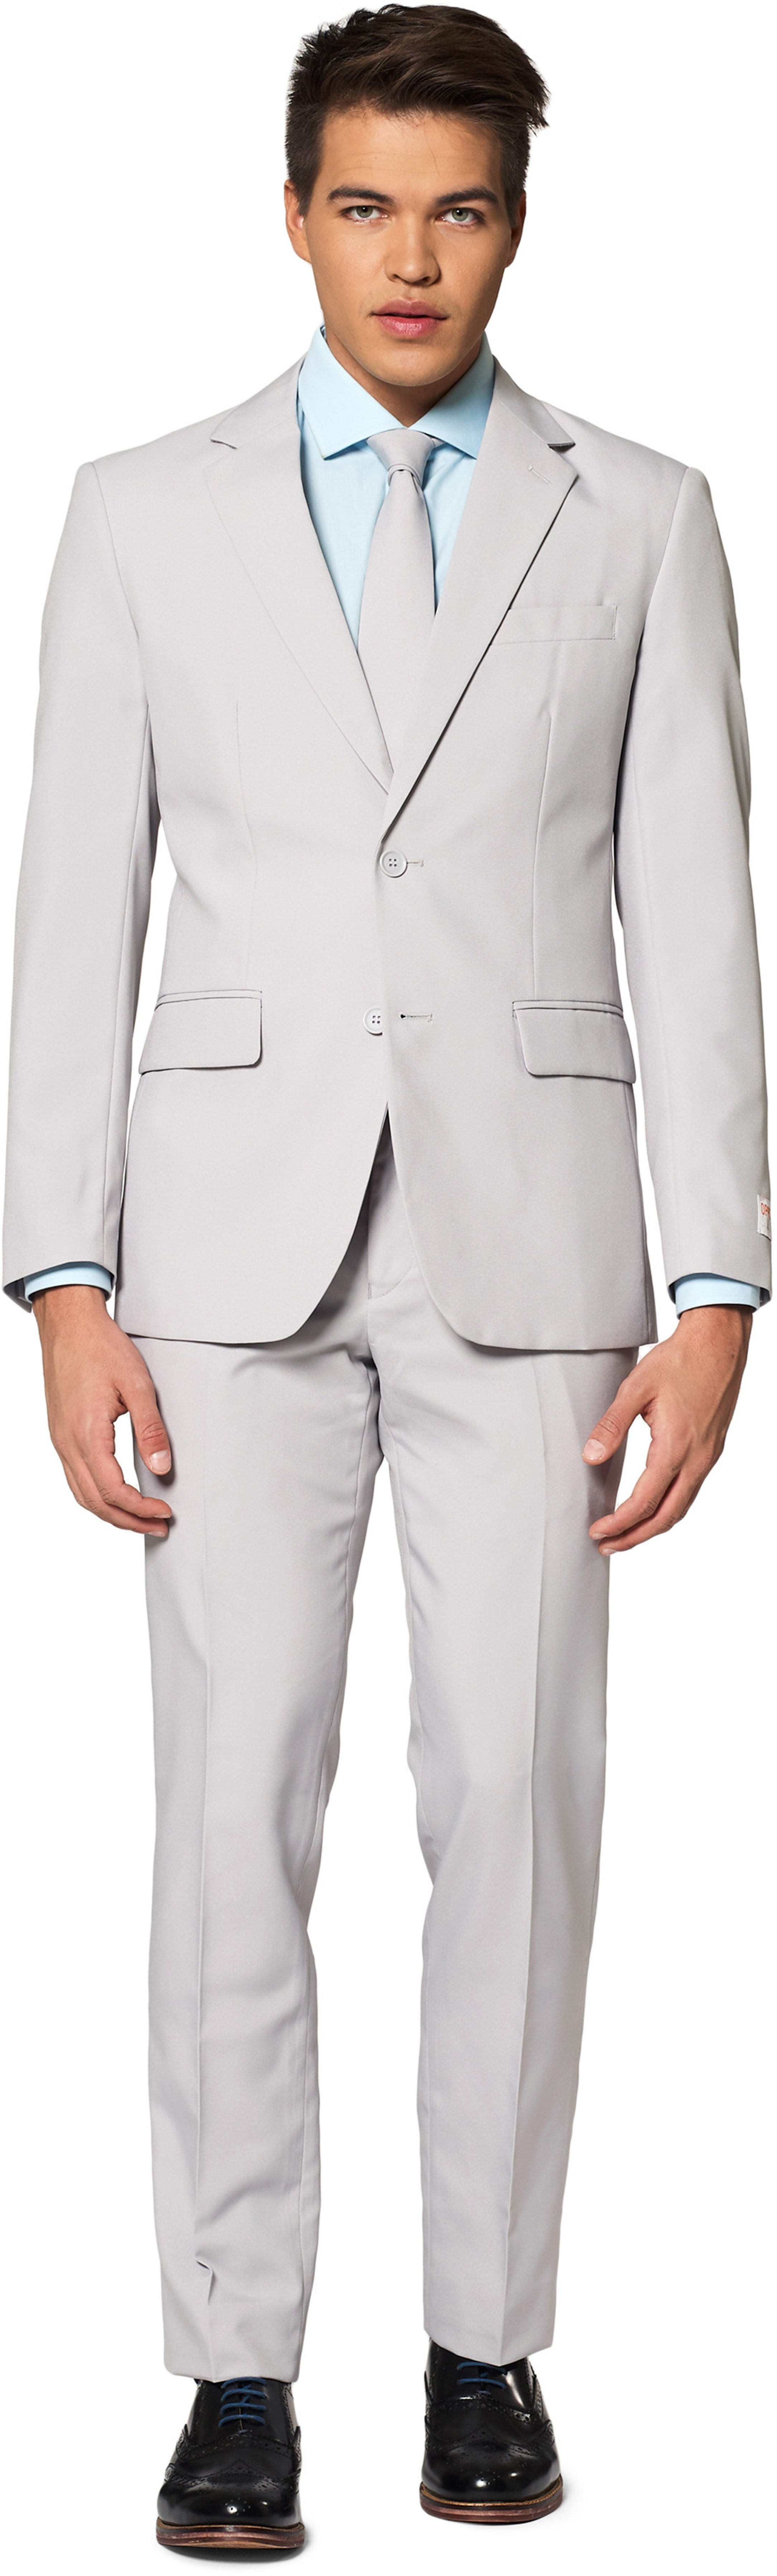 OppoSuits Groovy Grey Suit photo 0